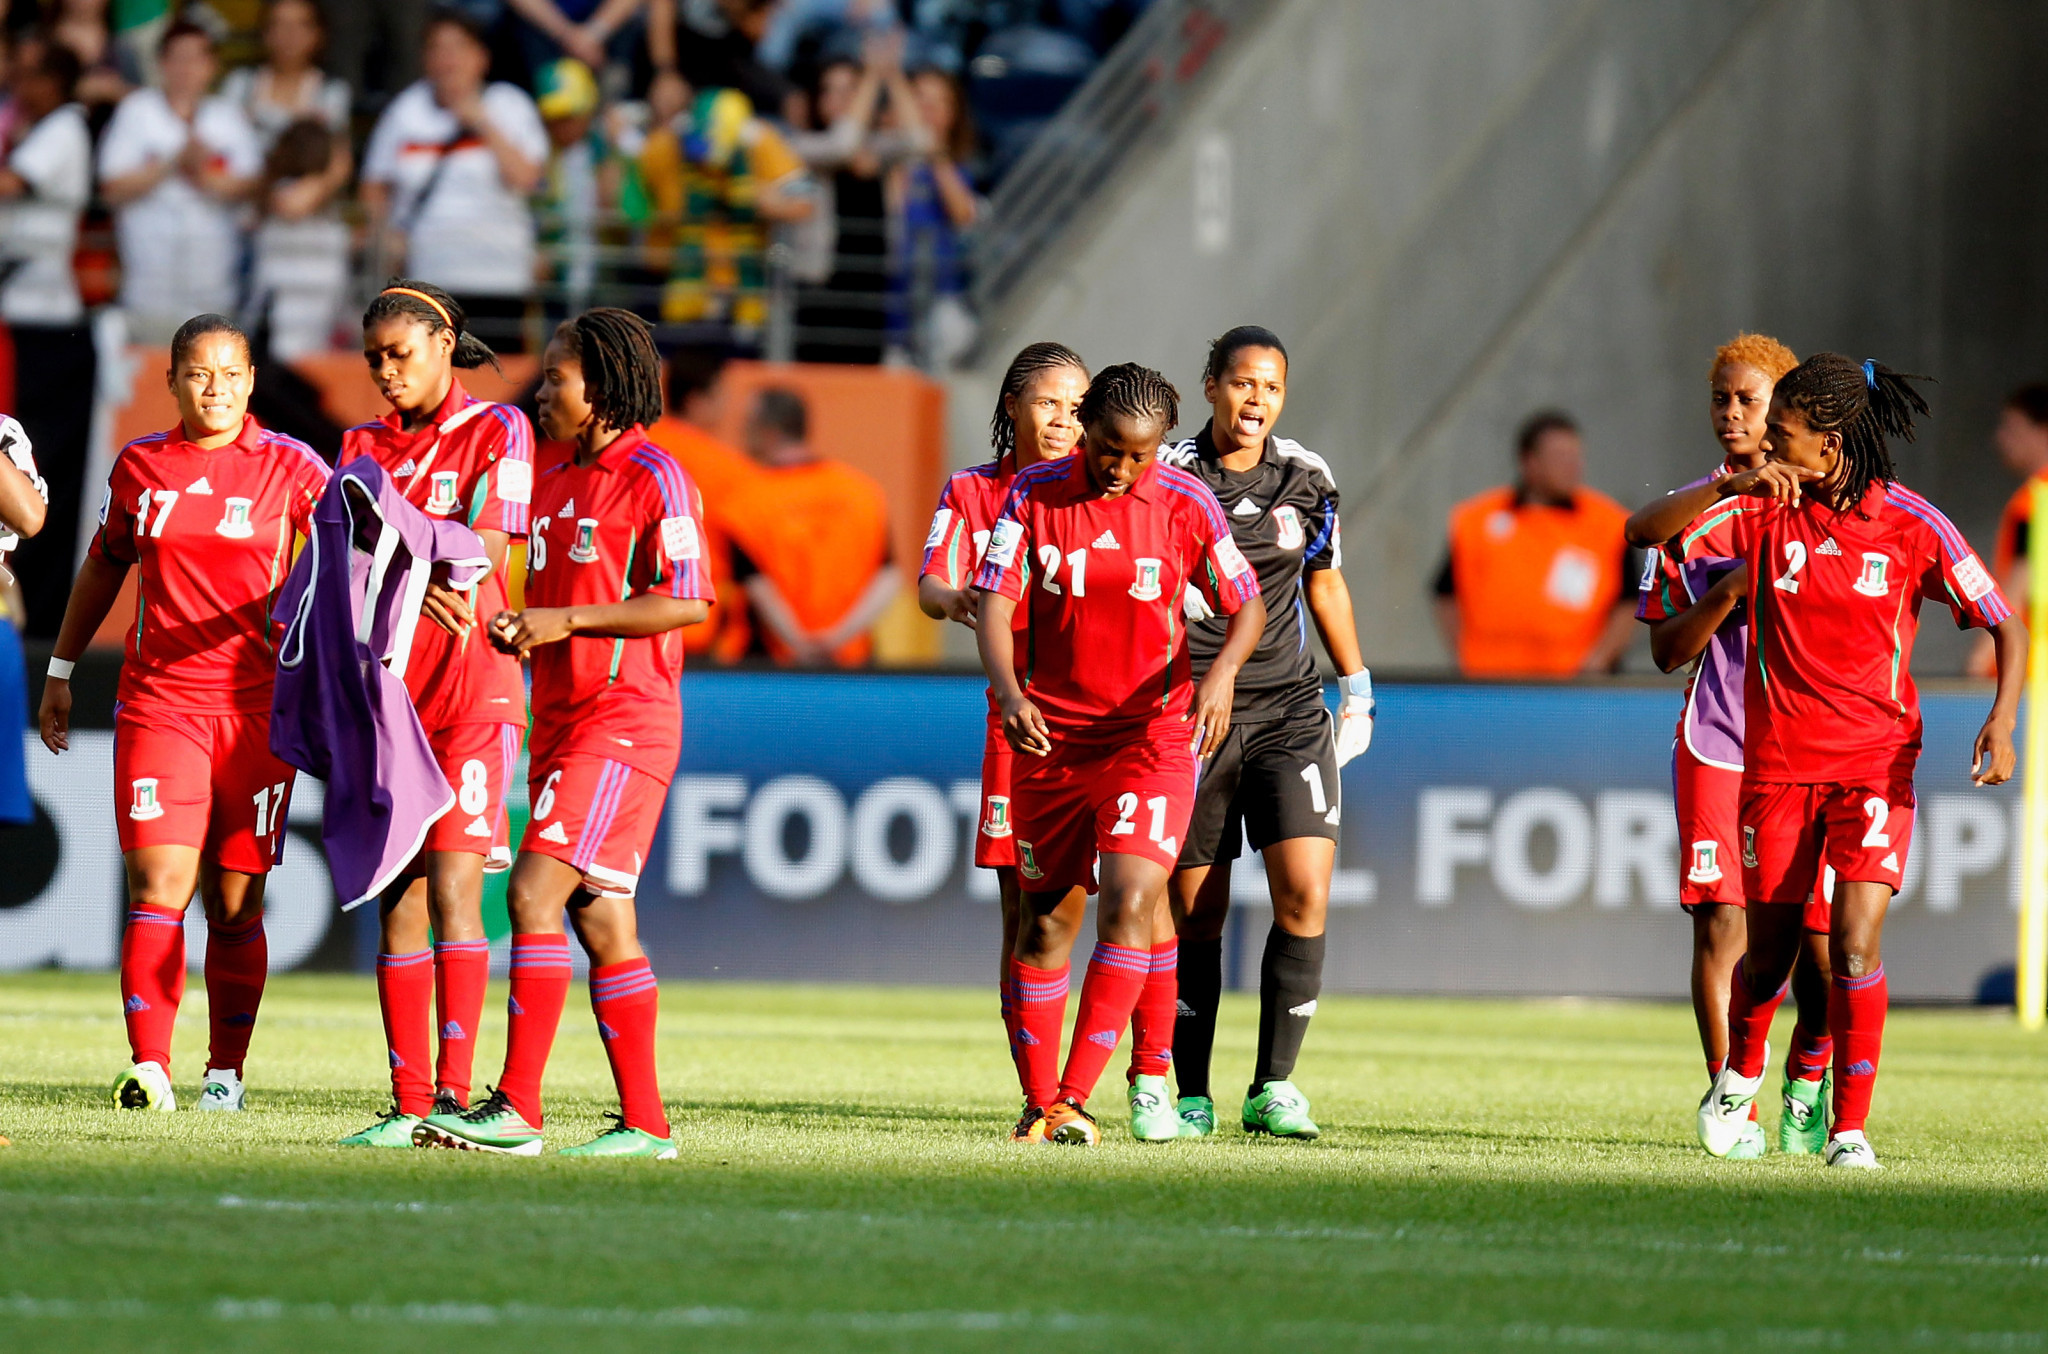 Kenya to launch CAS appeal after Equatorial Guinea reinstated to Women's Africa Cup of Nations